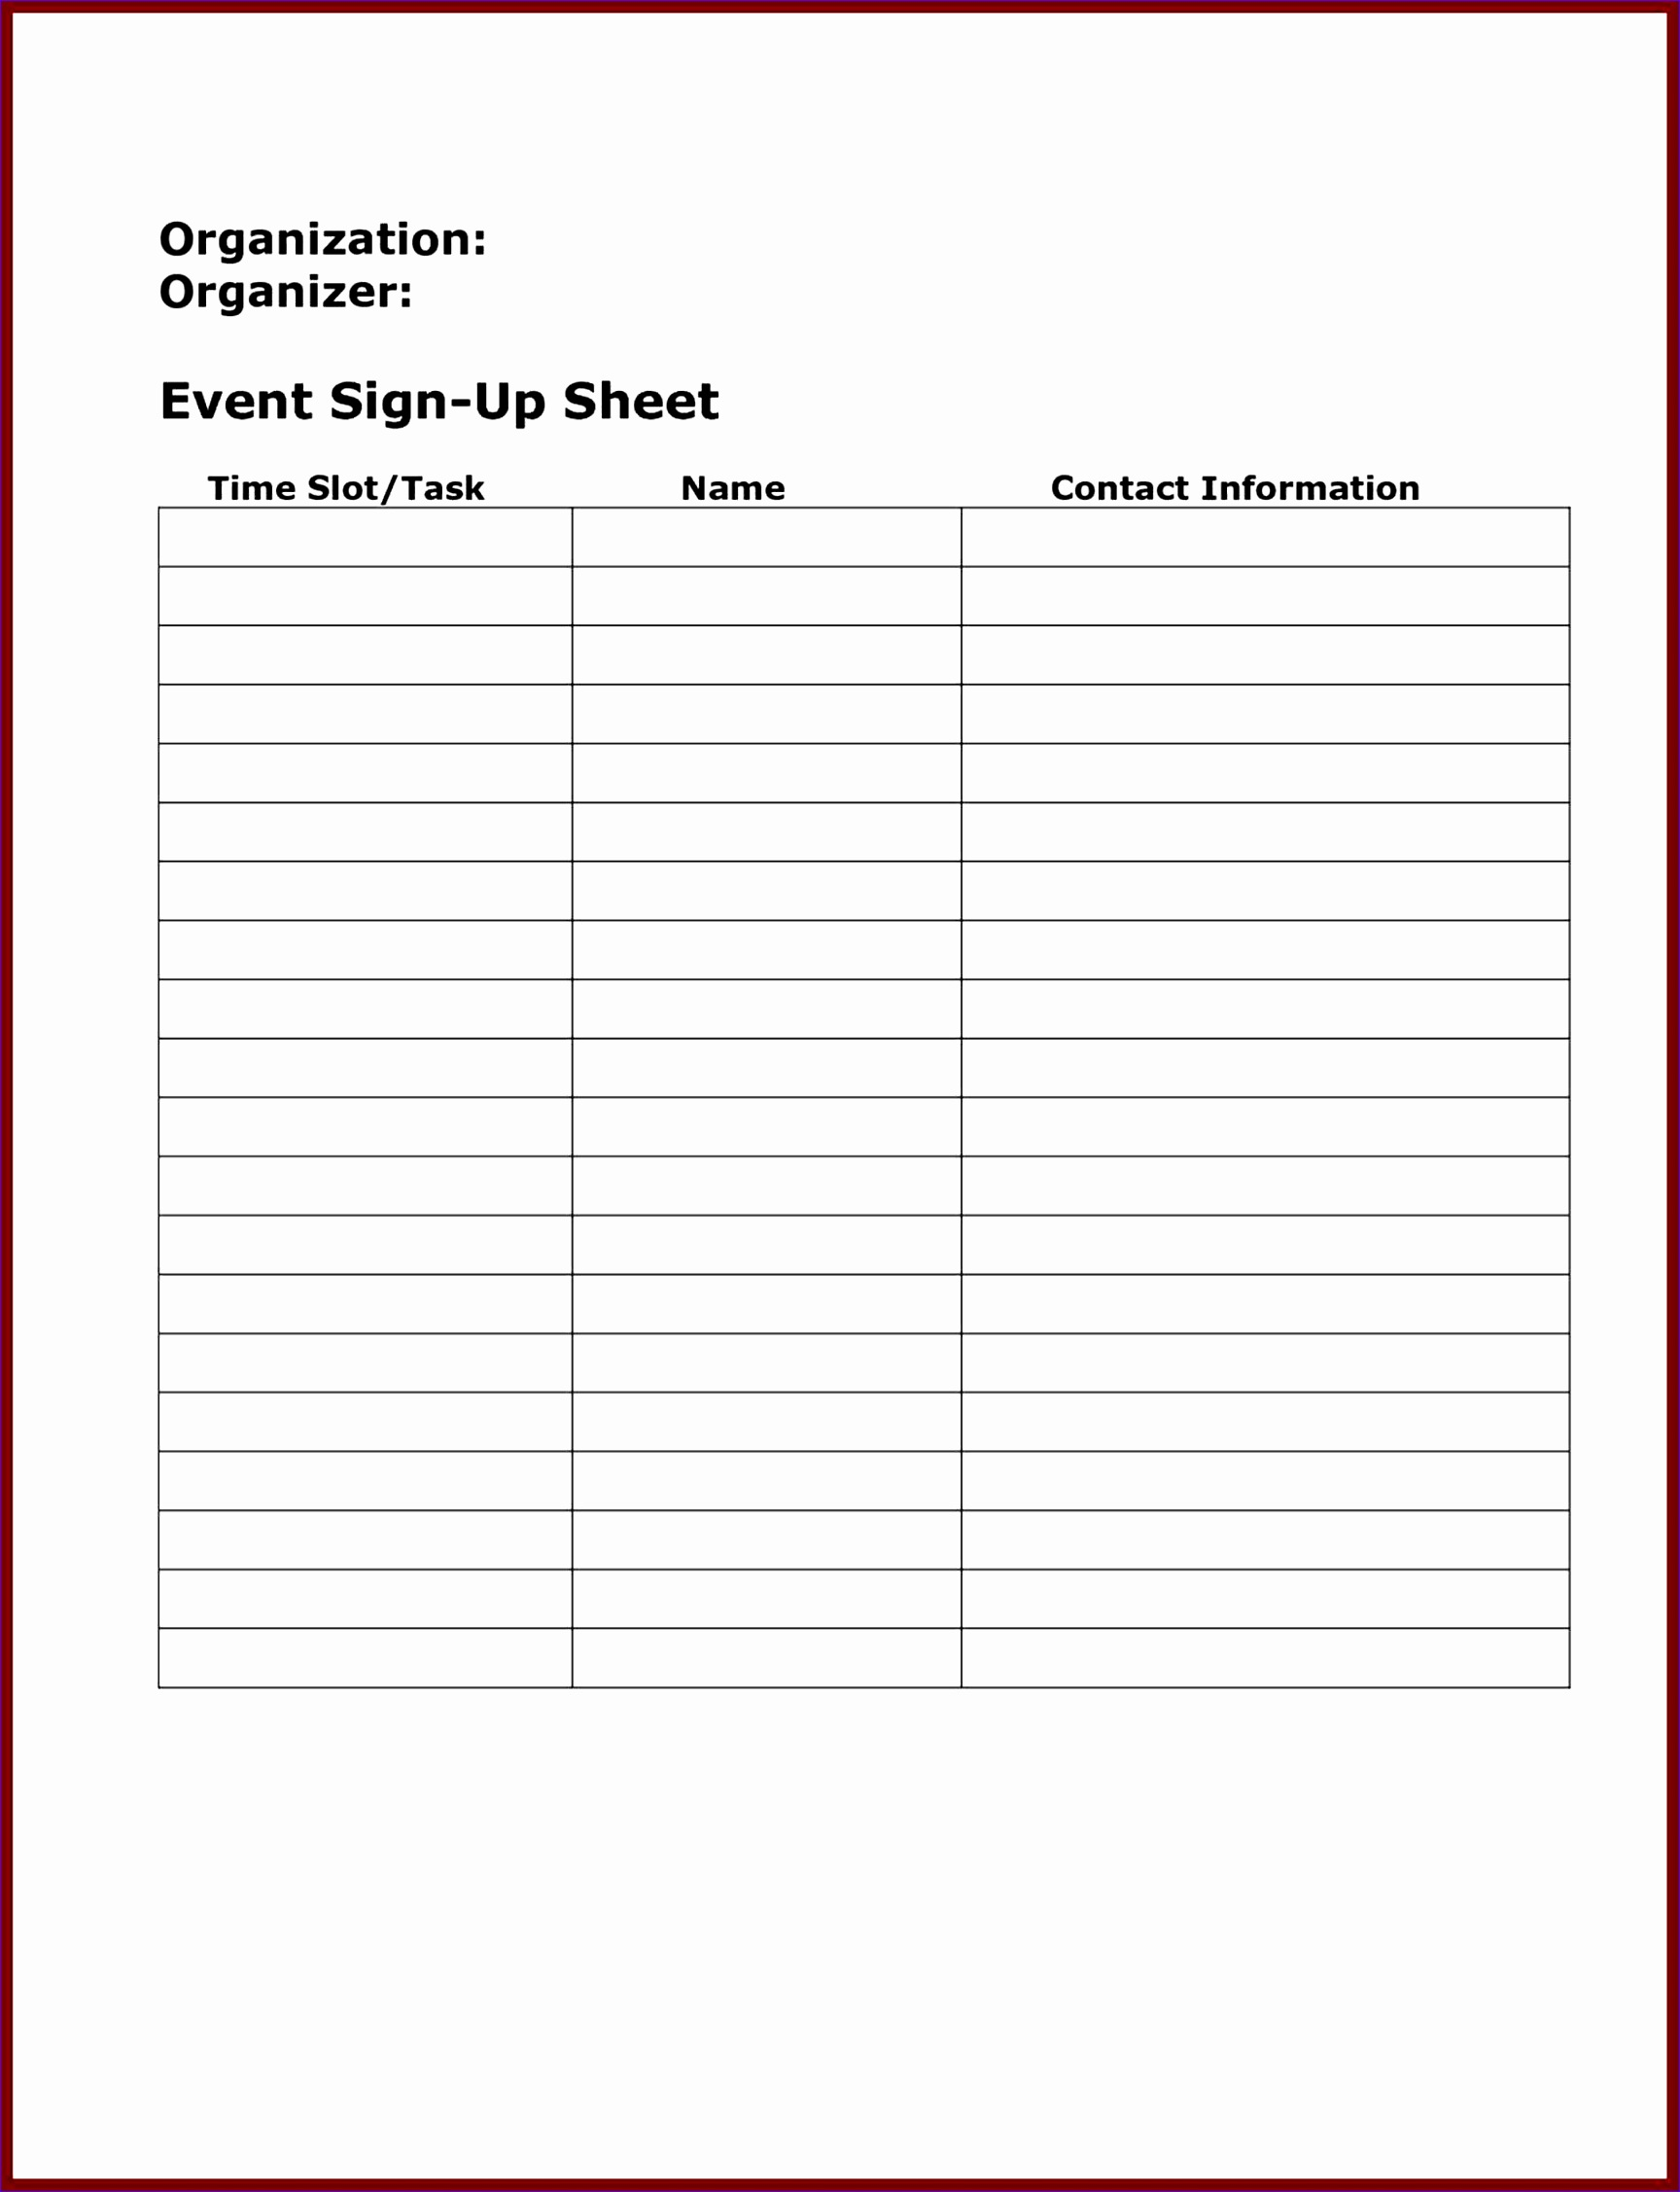 sign up u sheets potluck doc Log In Sheet Template template sign up sheet u sheets potluck daily log free printable